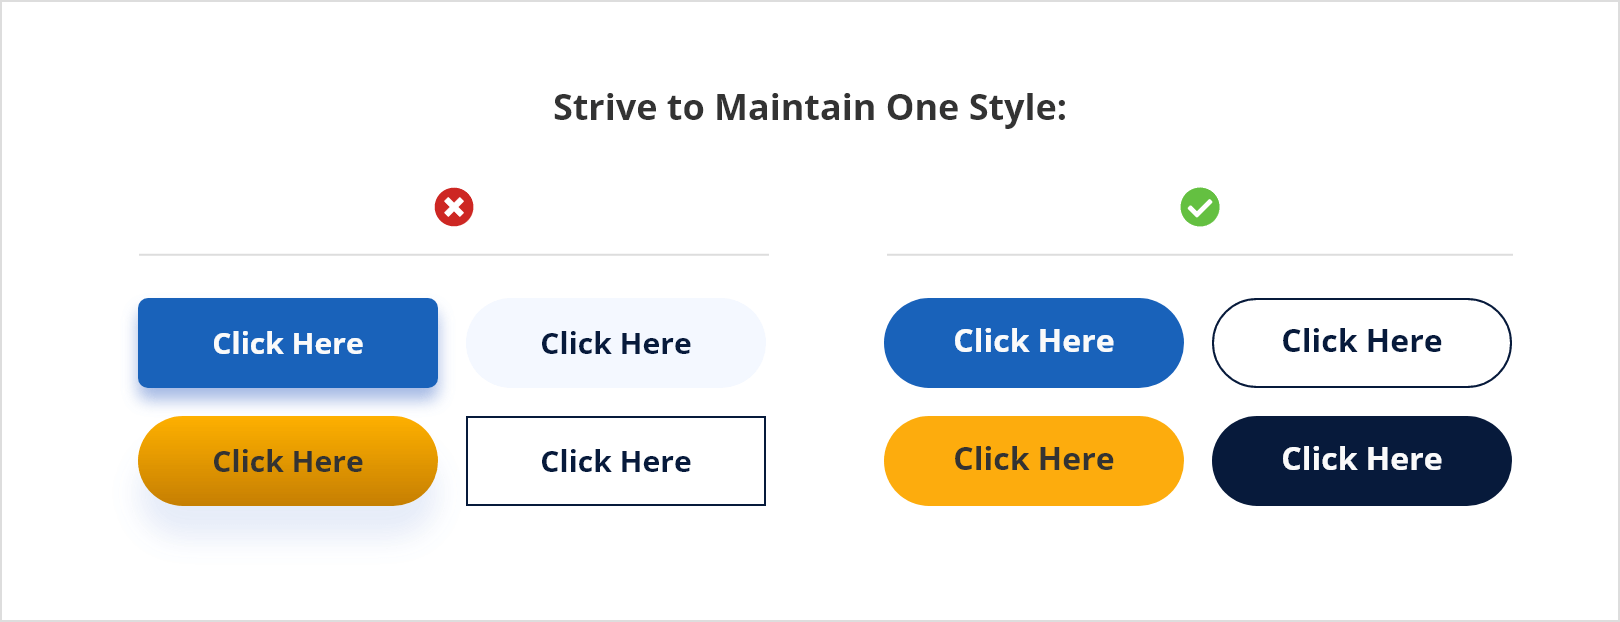 Strive to maintain one style